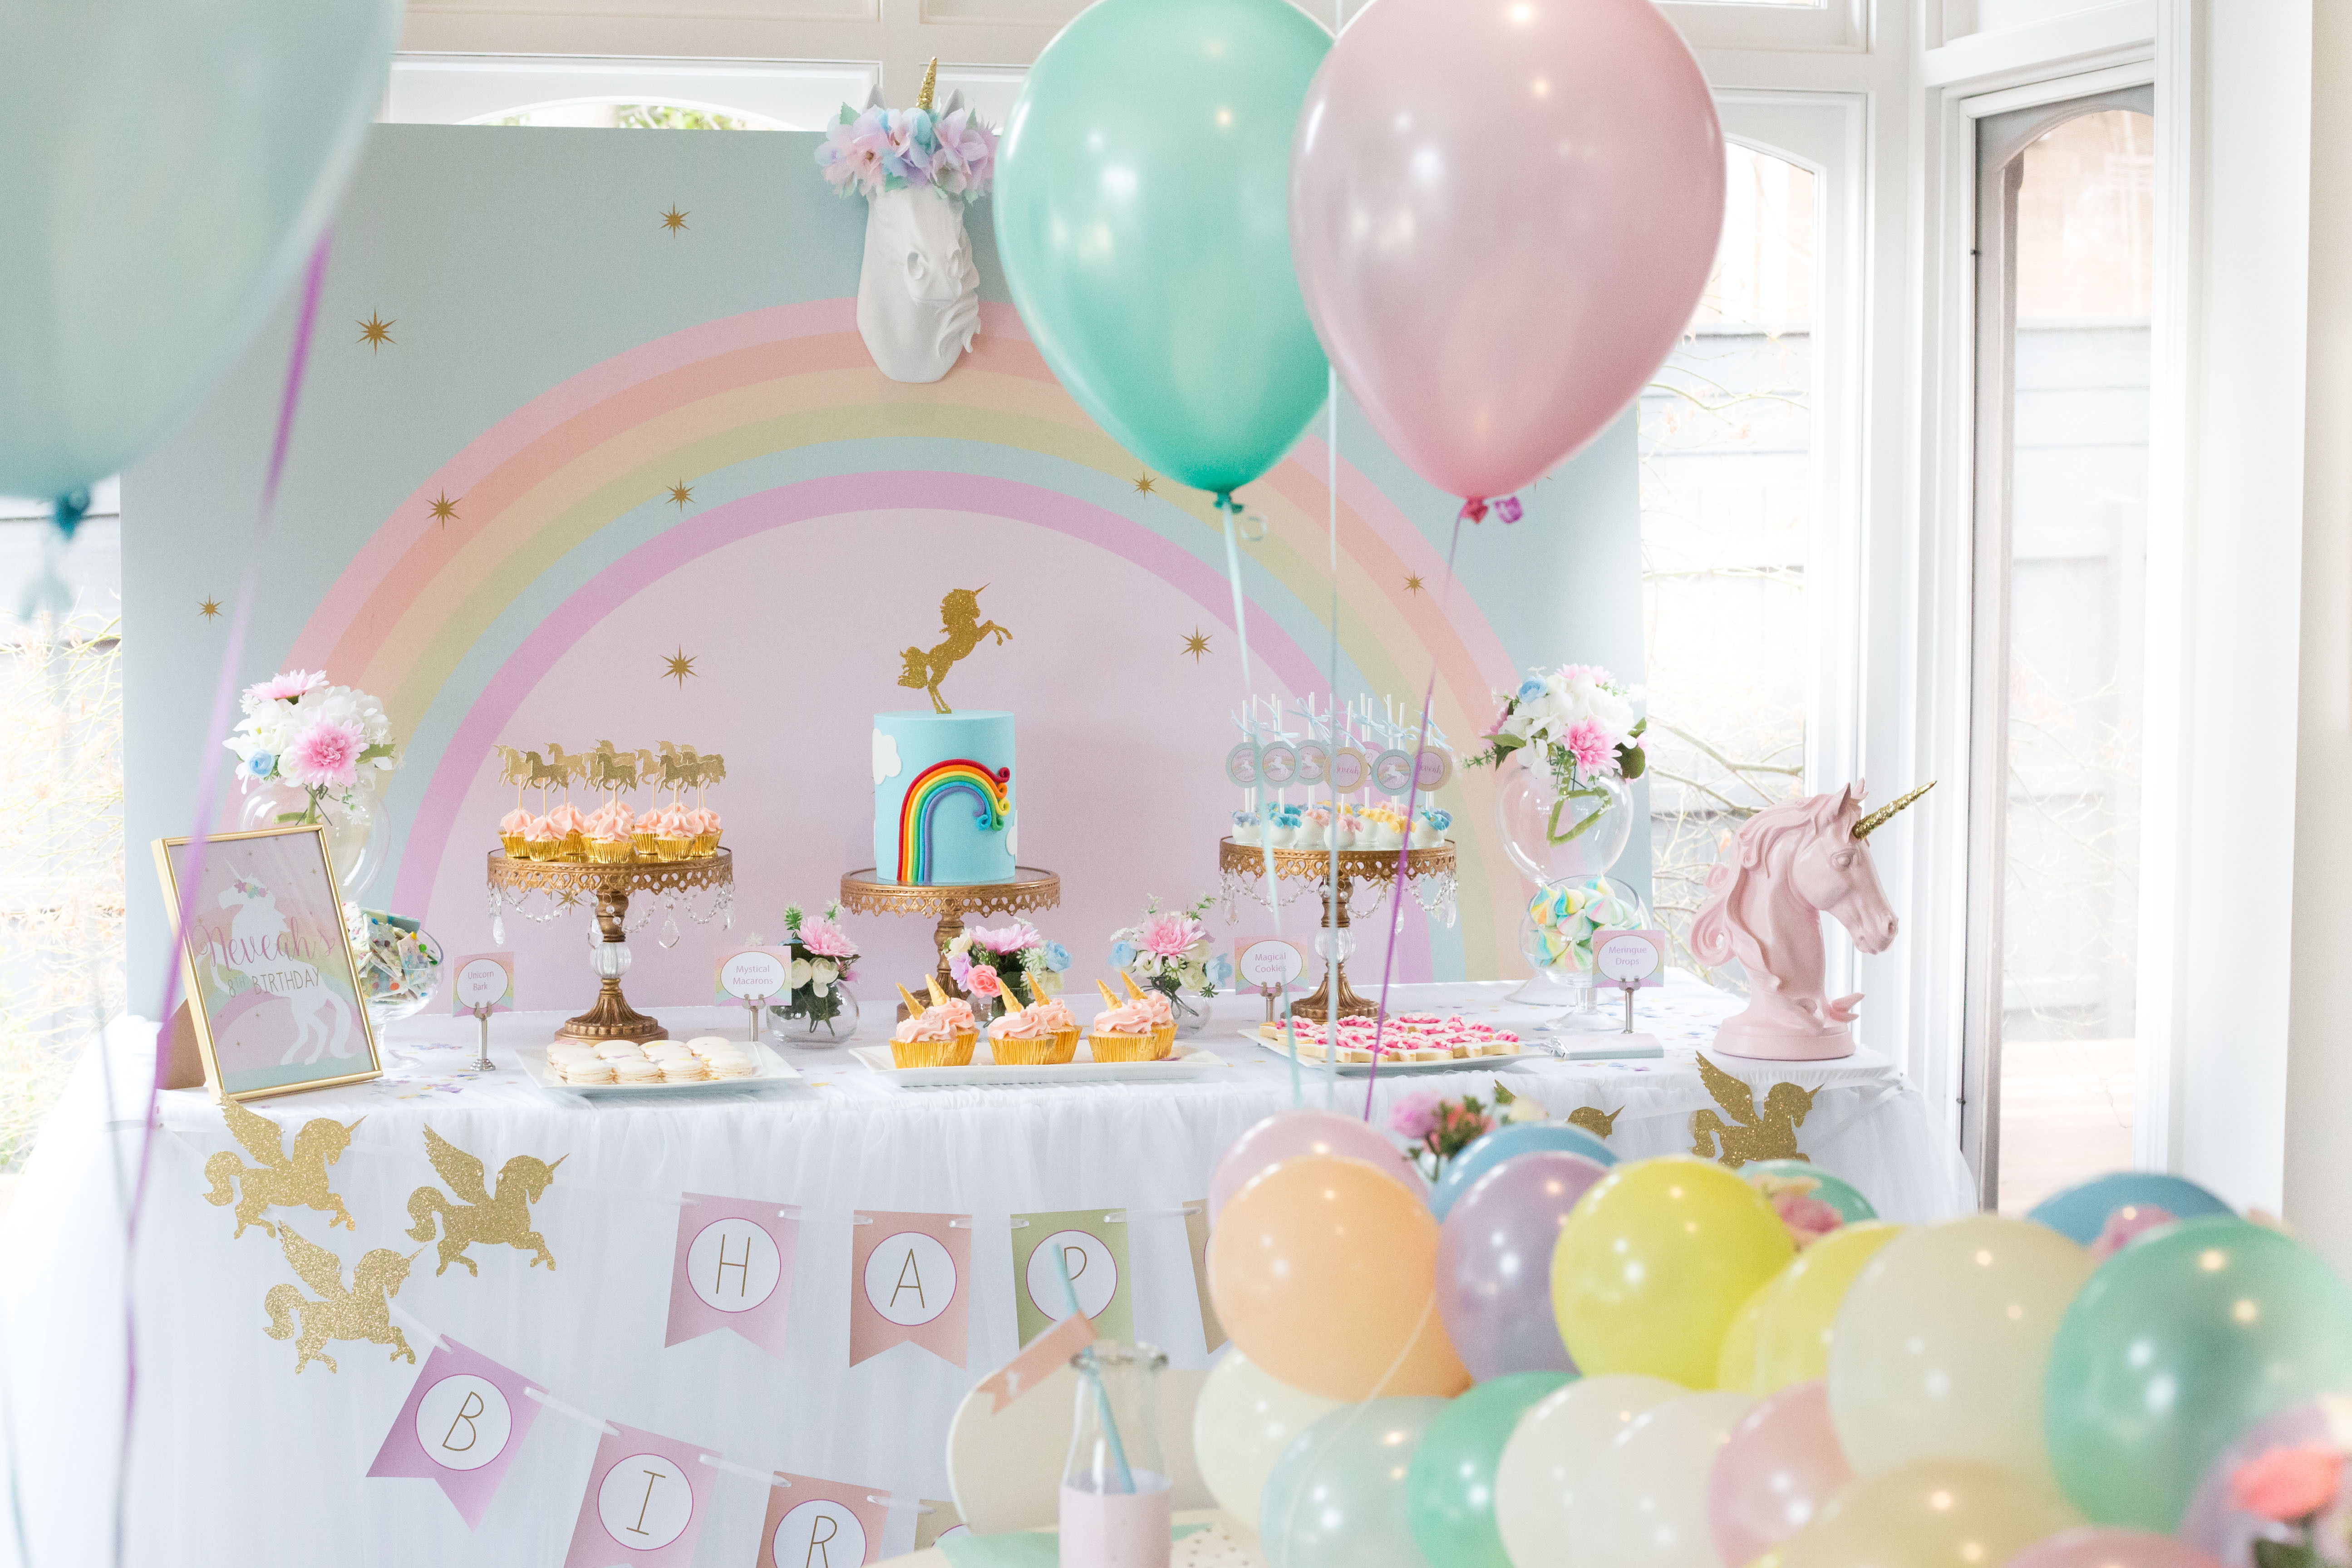 Best ideas about Unicorn Birthday Decorations . Save or Pin Unicorn Birthday Party Now.